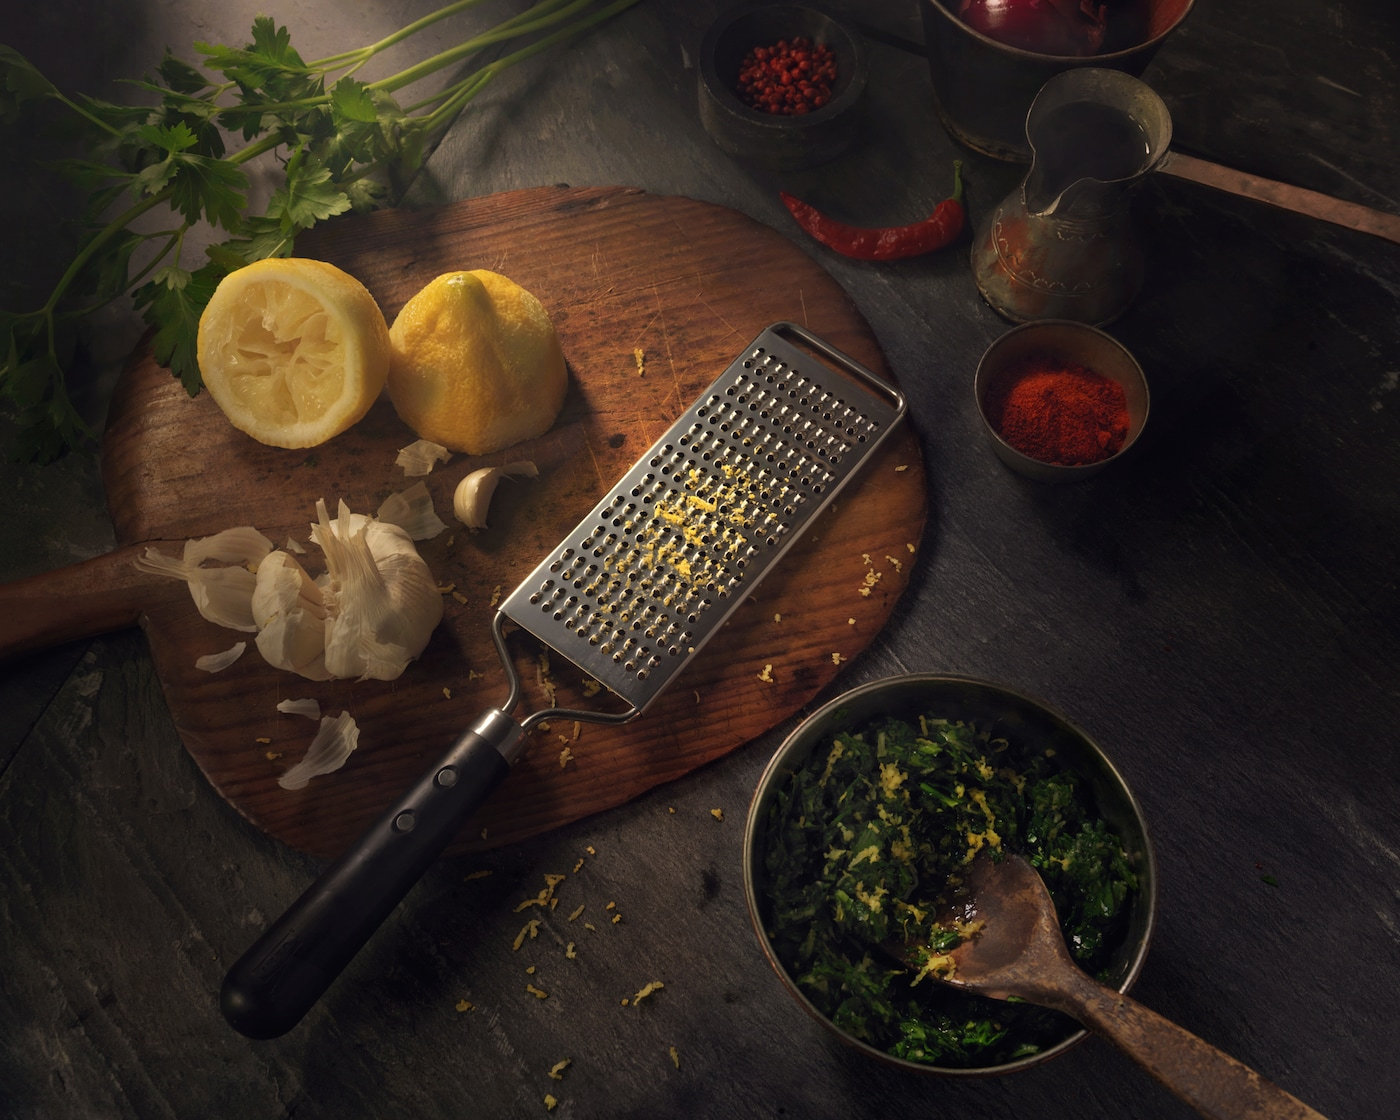 A grater in stainless steel with a black plastic handle. Shown together with a lemon on a wooden chopping board.